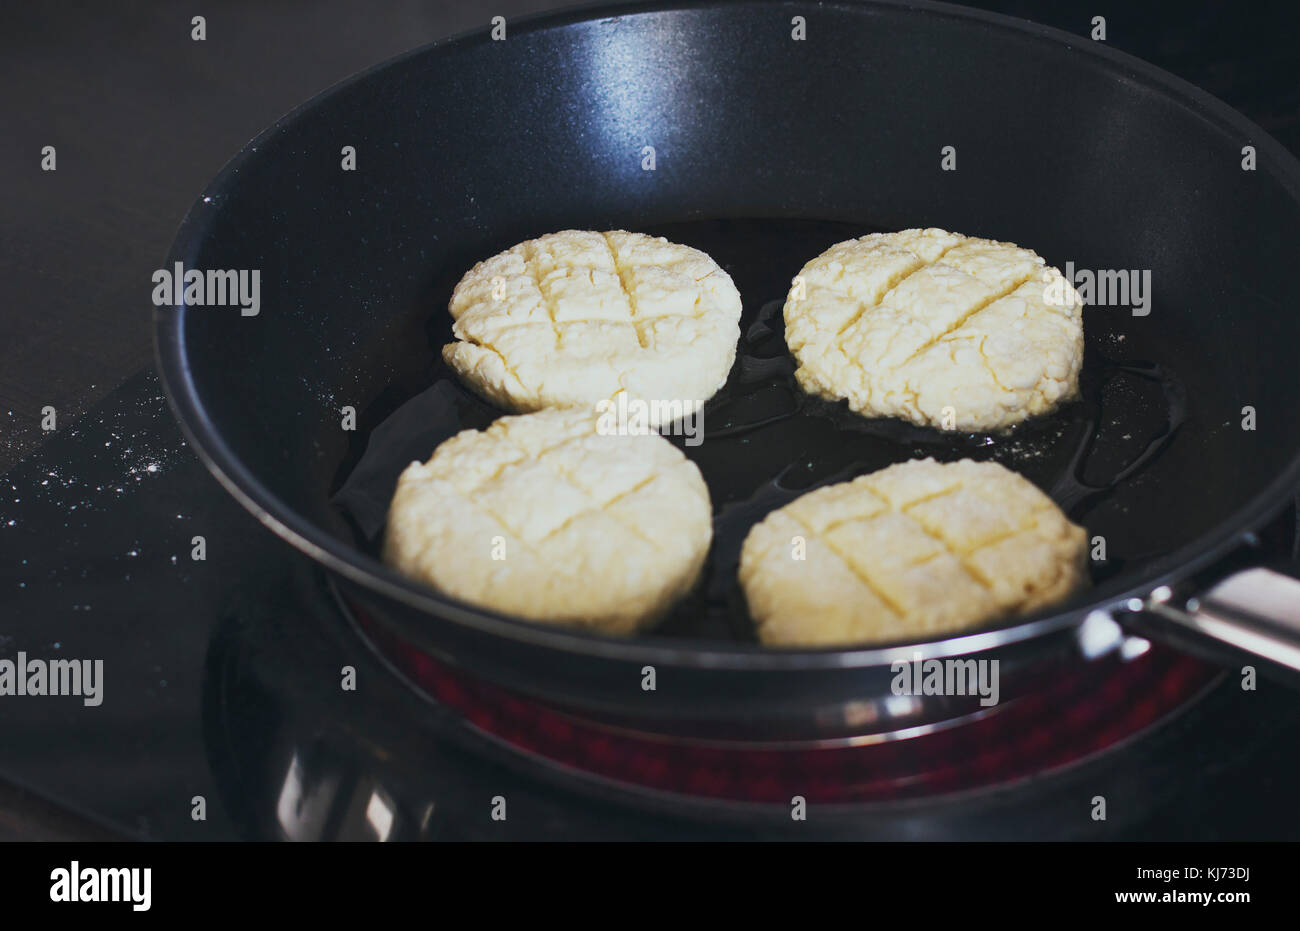 The cottage cheese pancakes fried in a pan - Stock Image